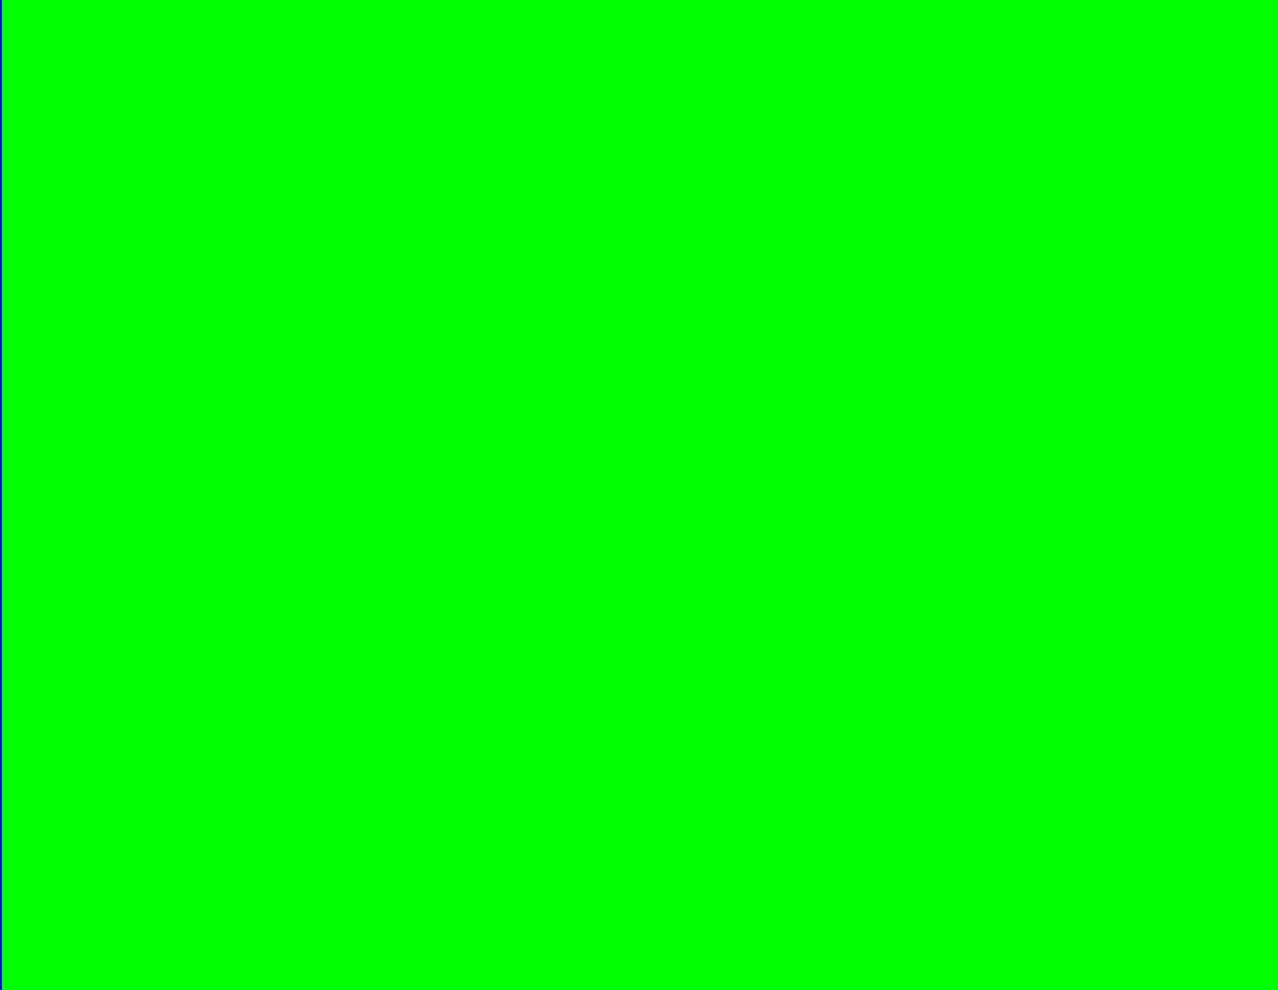 Pure Green Test Screen